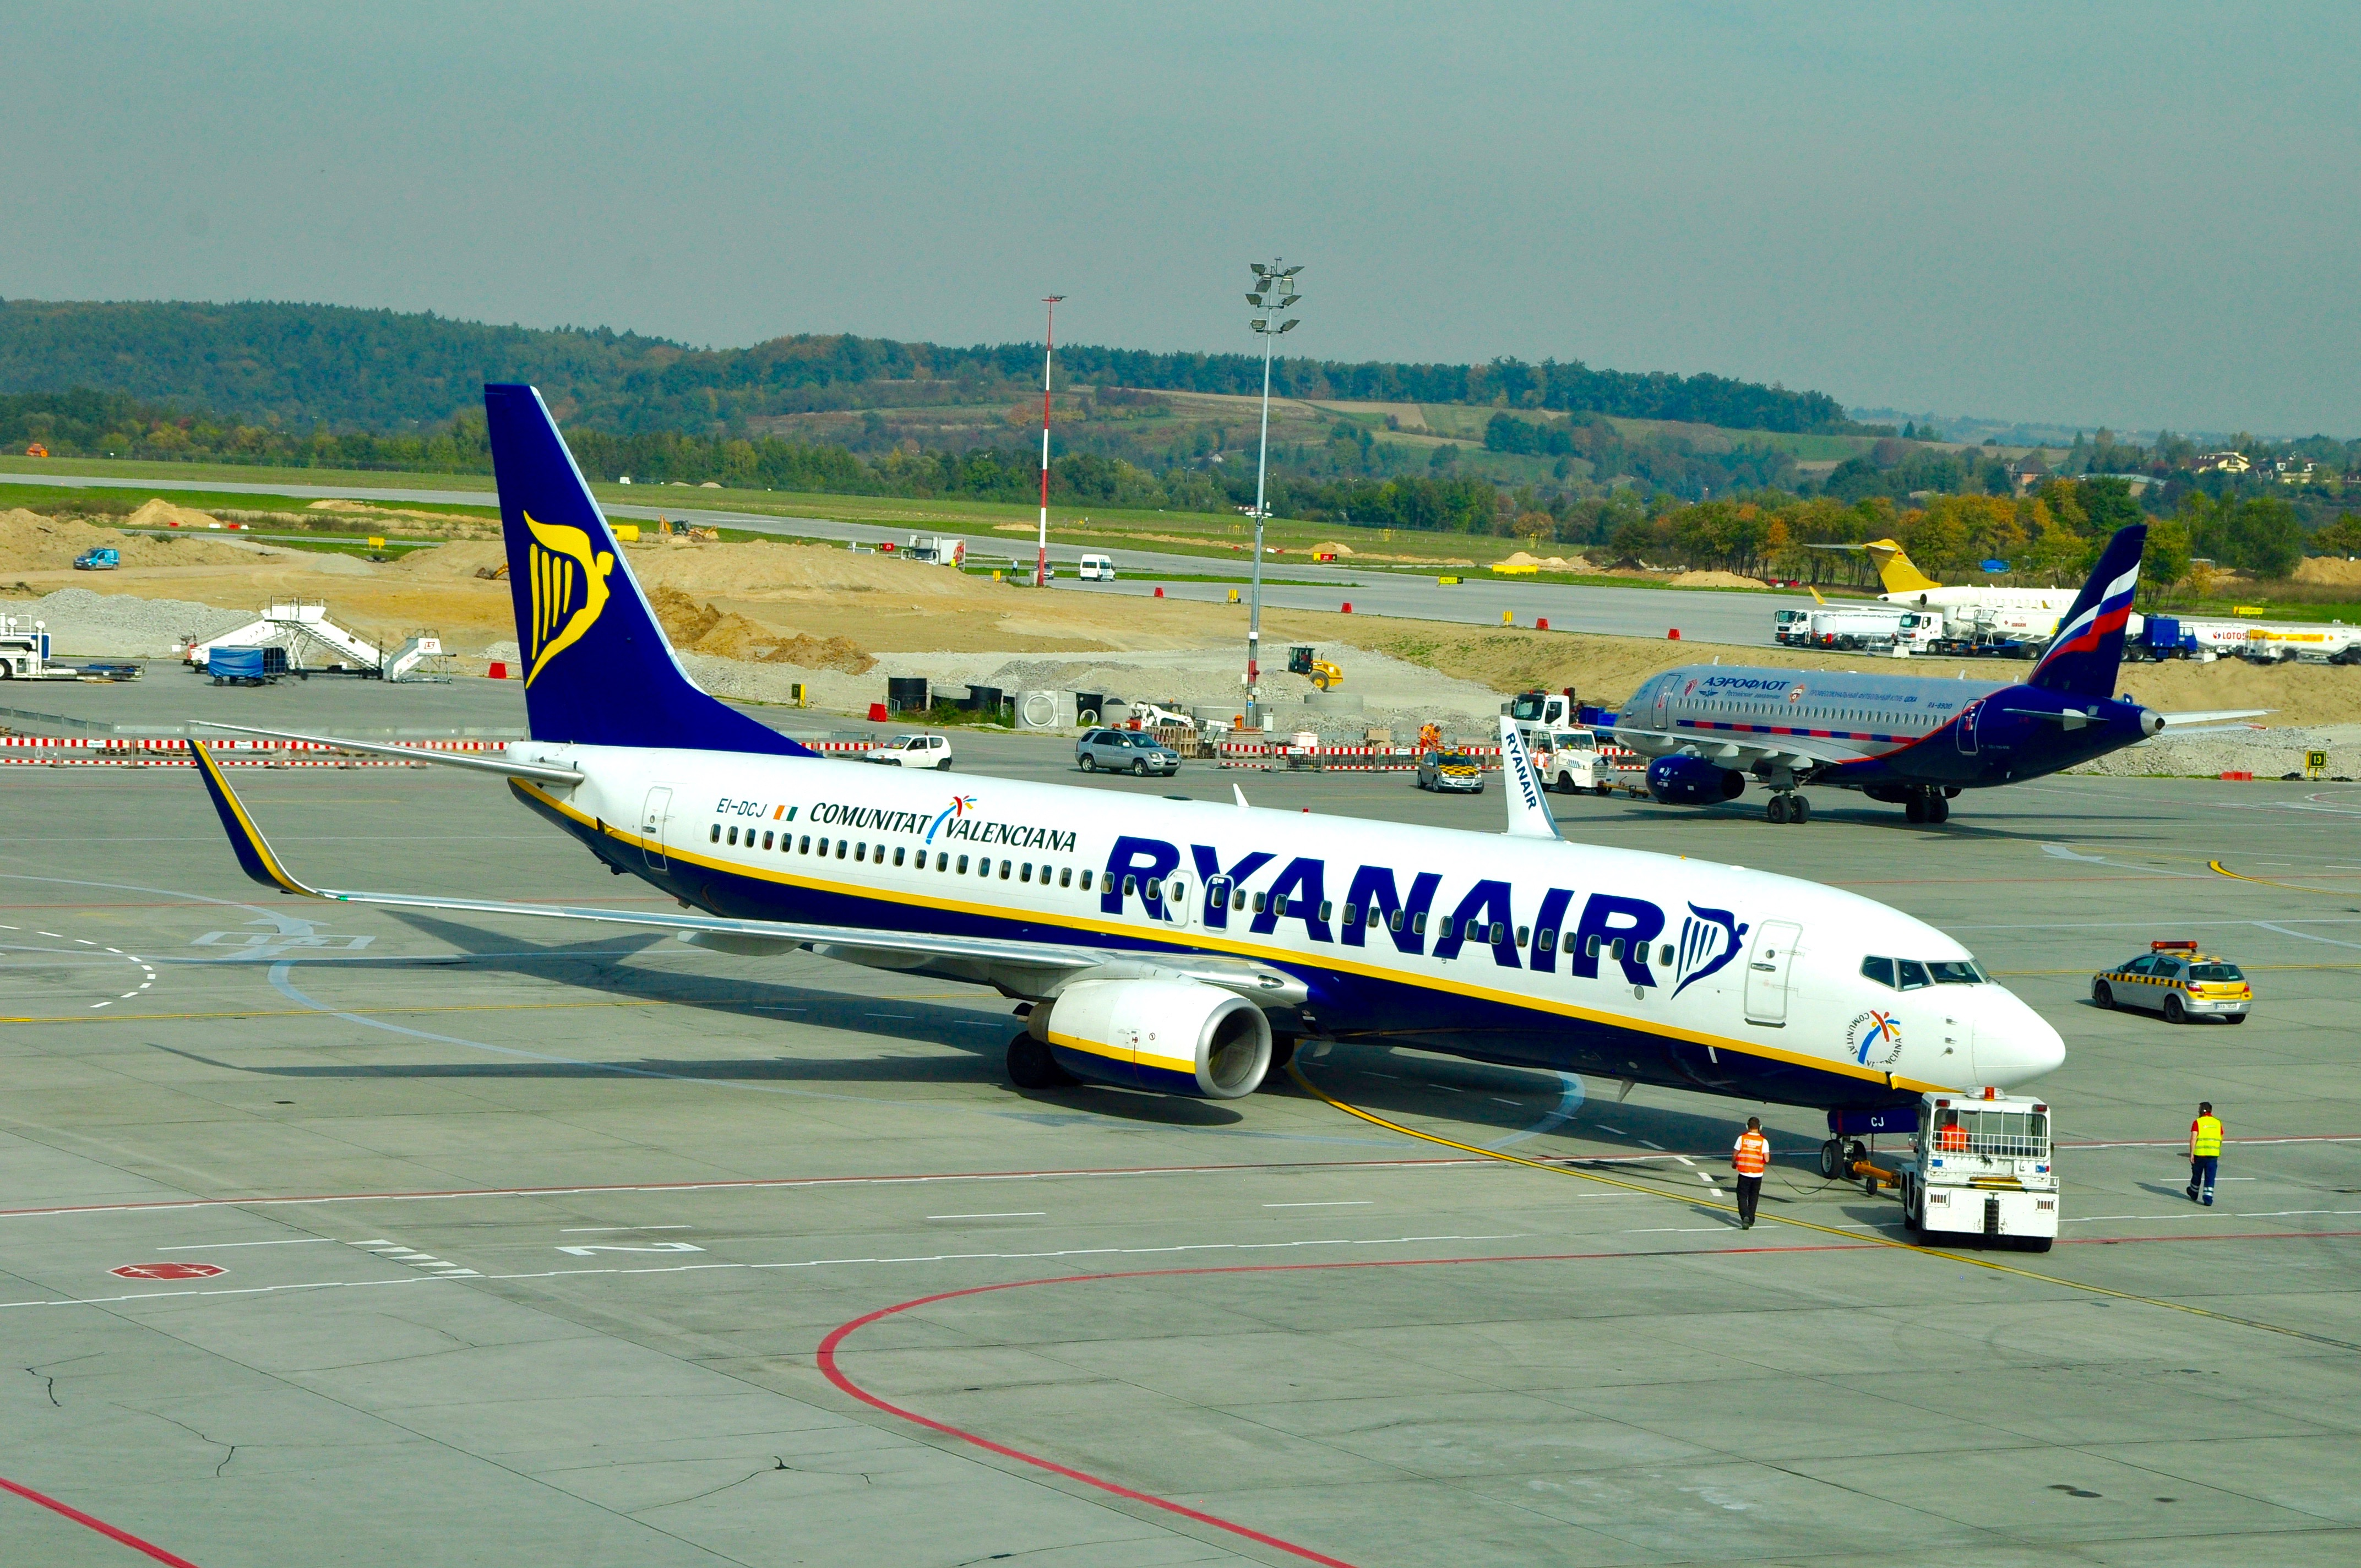 Ryanair will allow nervous flyers to shun Boeing Max aircraft